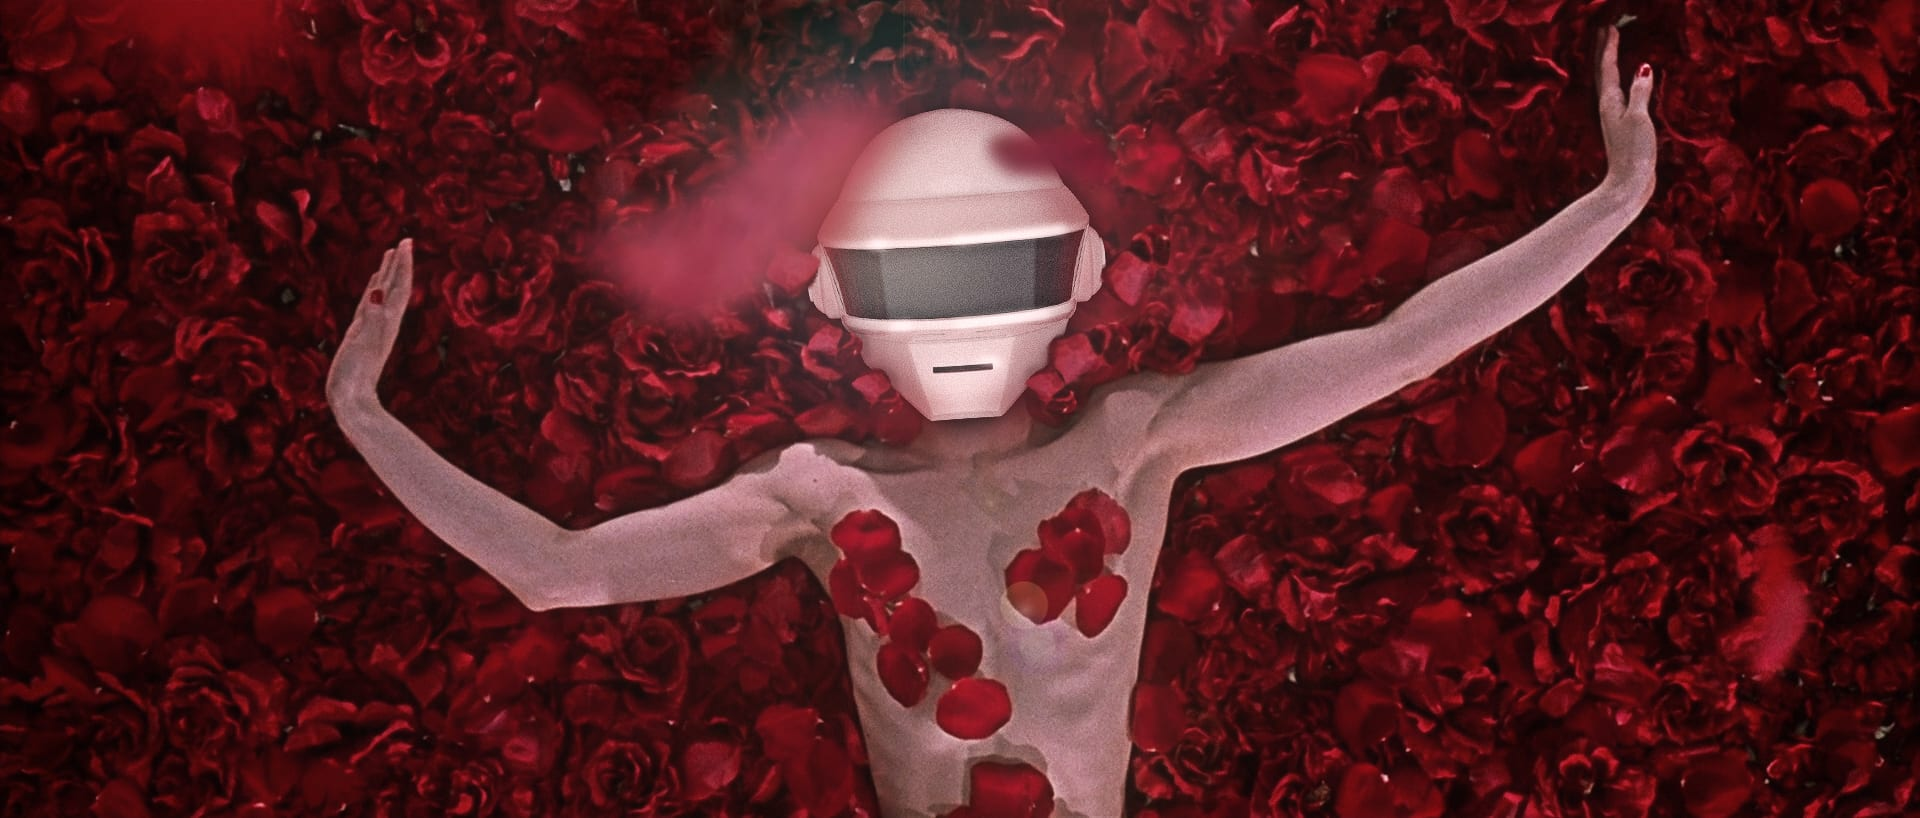 American_Beauty2 the rdg daft punk project in epic movies